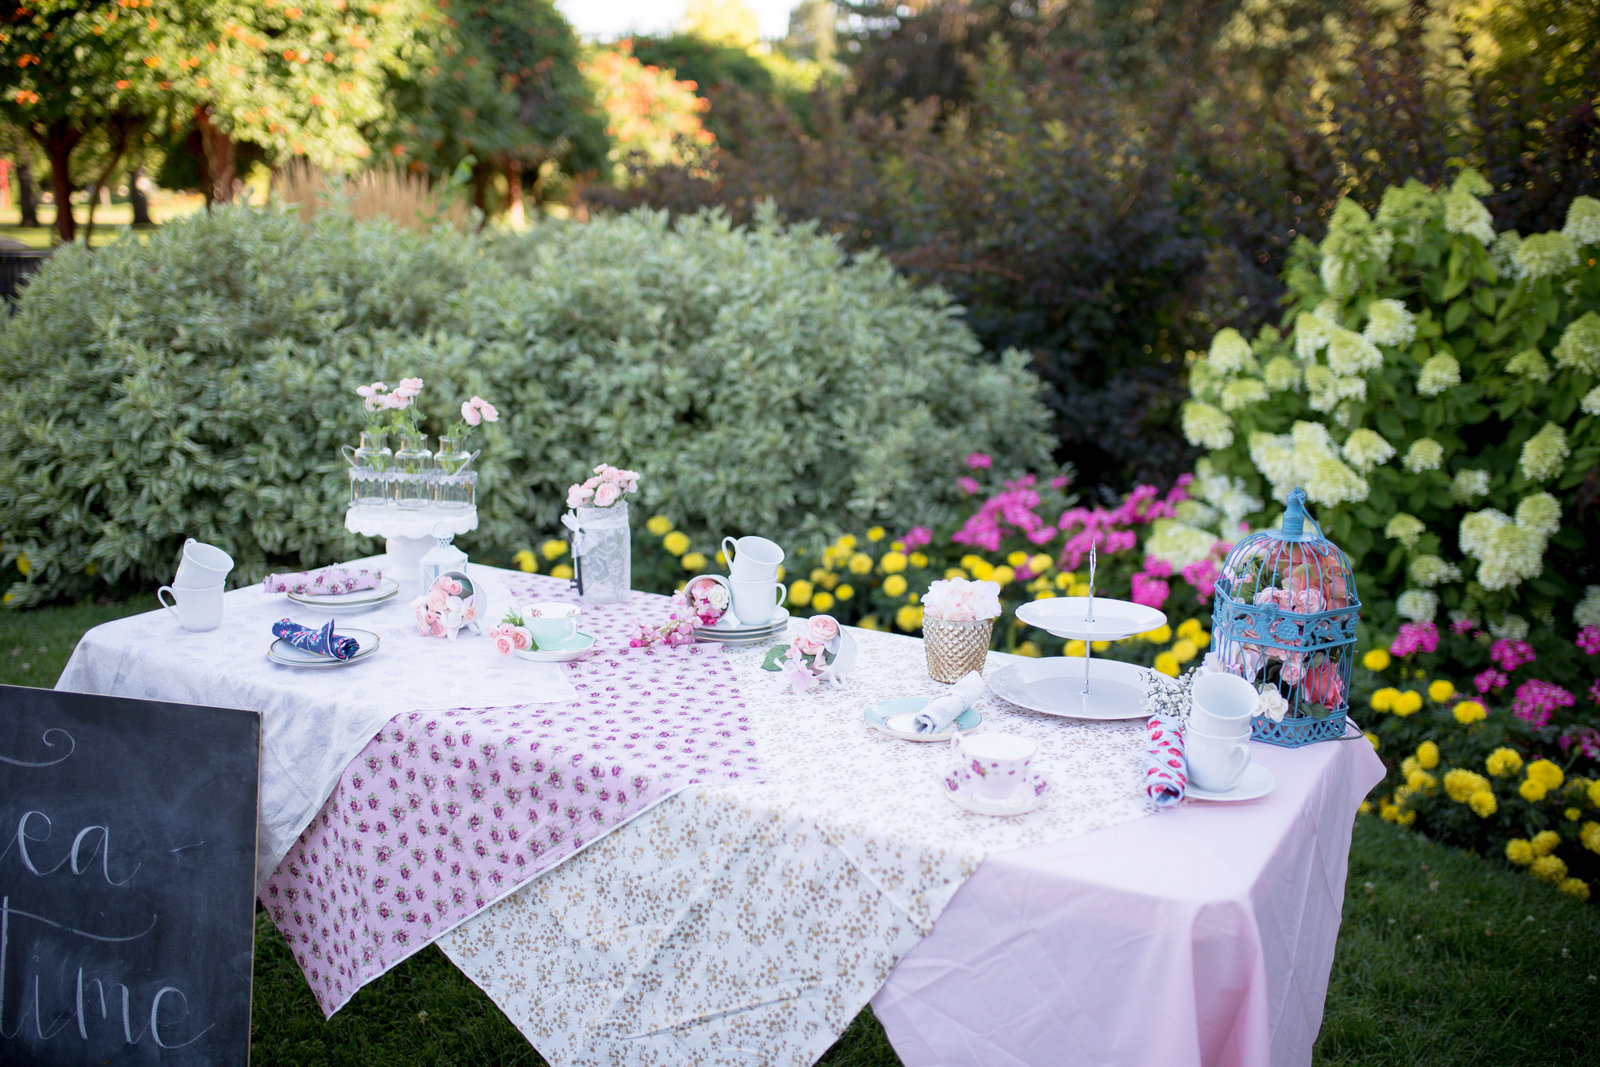 Tea party table setup